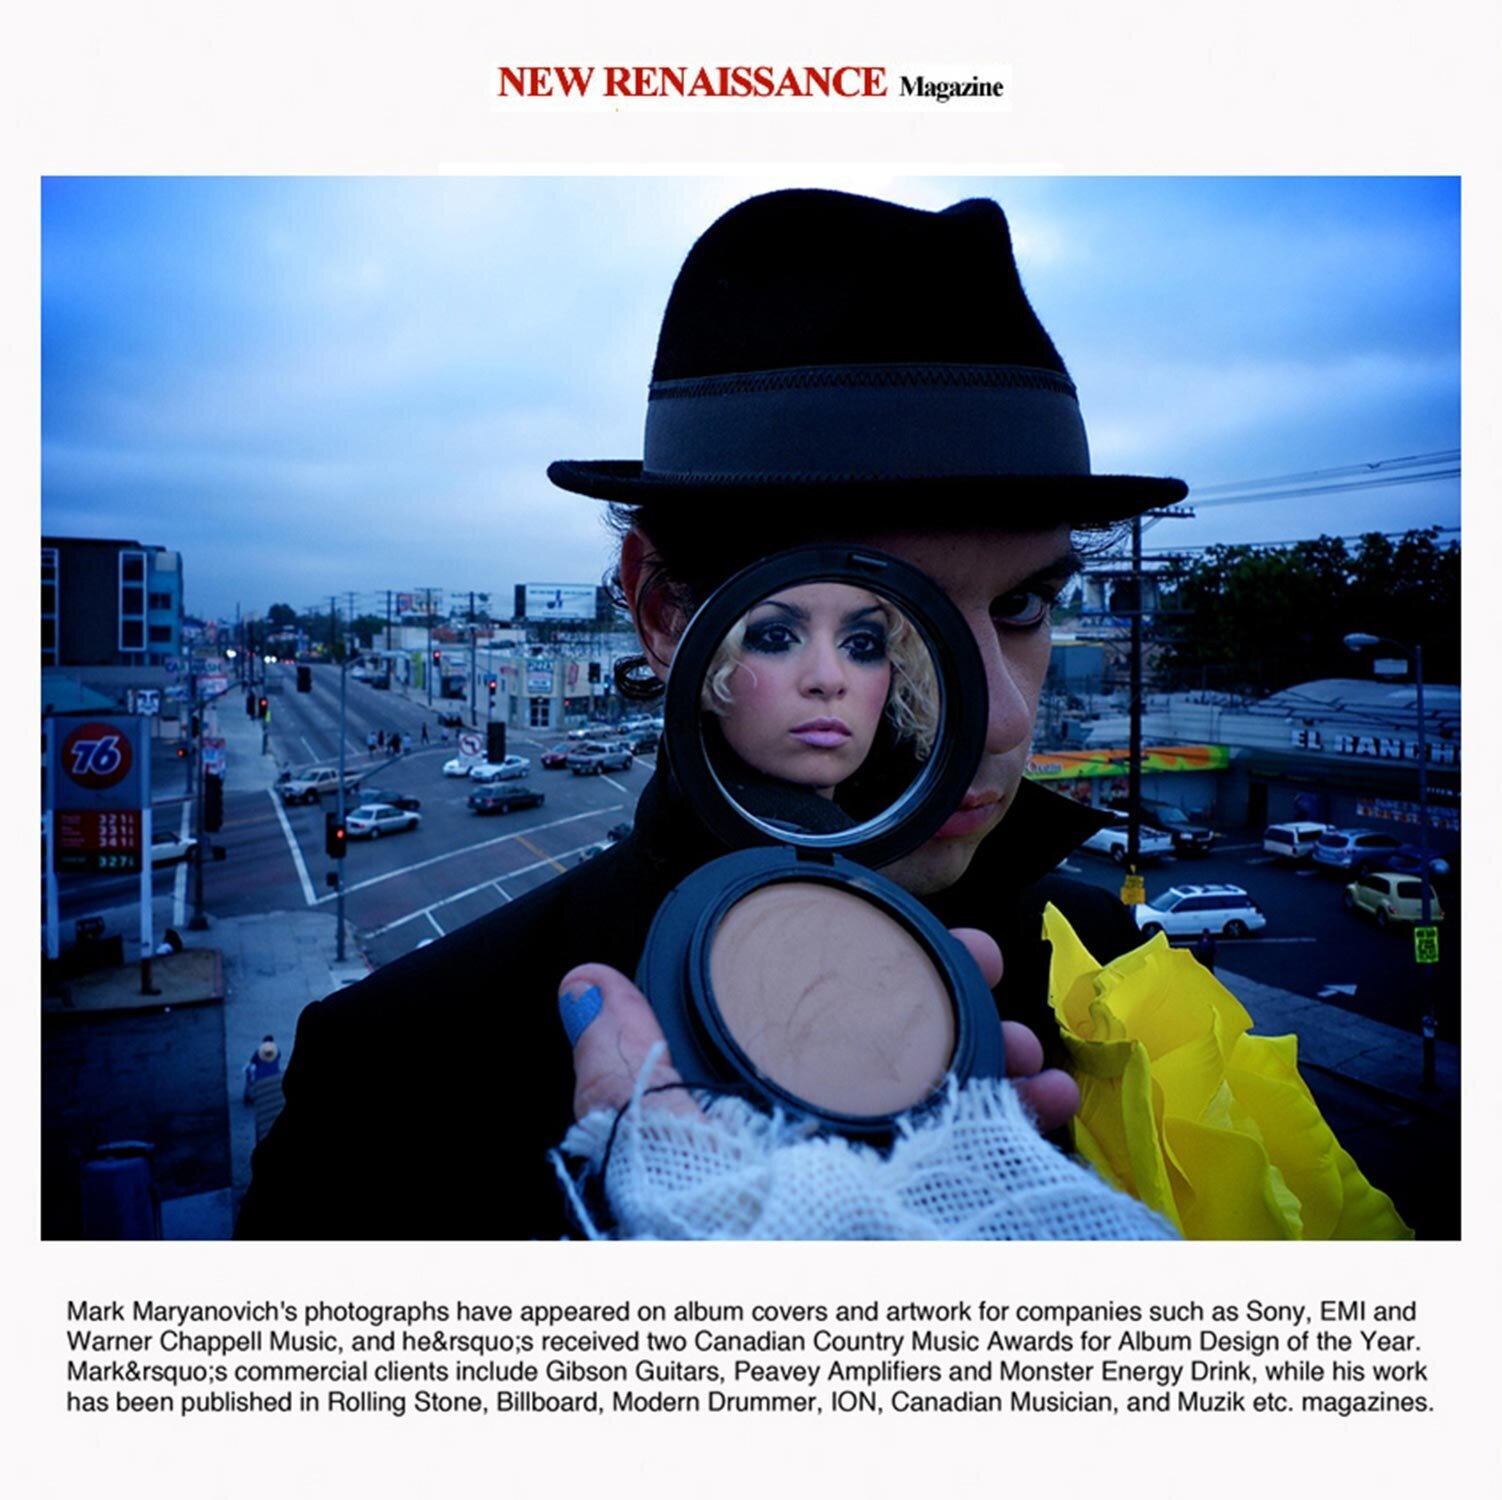 interview-mark-maryanovich-new-renaissance-magazine-page-2-los-angeles